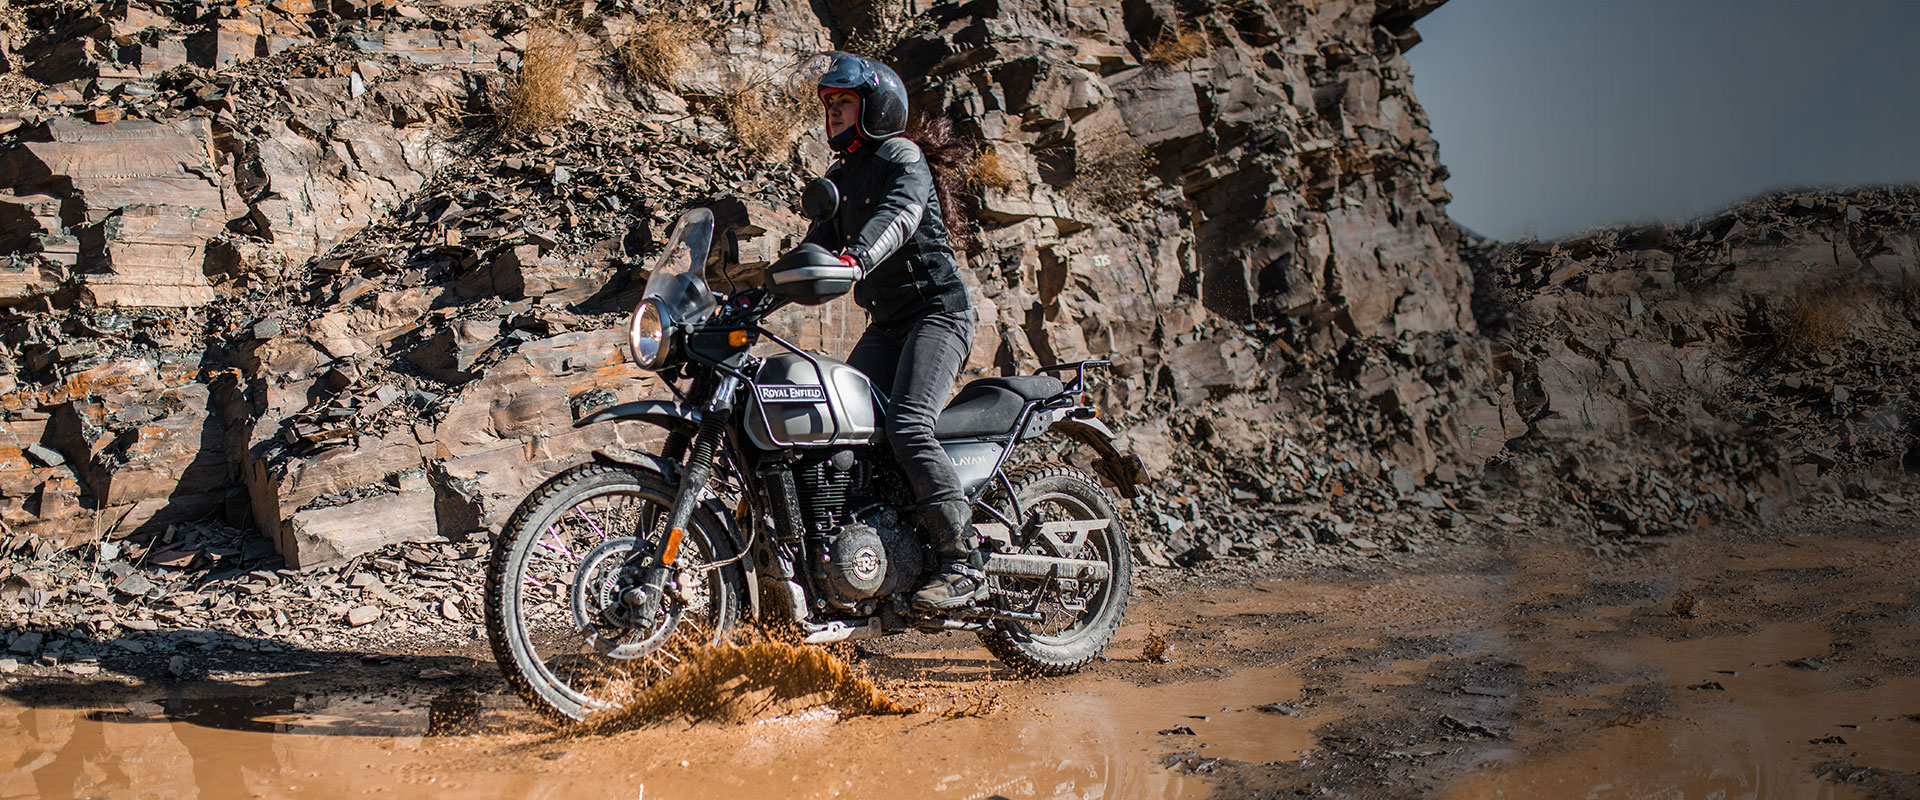 Off road with the Royal Enfield Himalayan